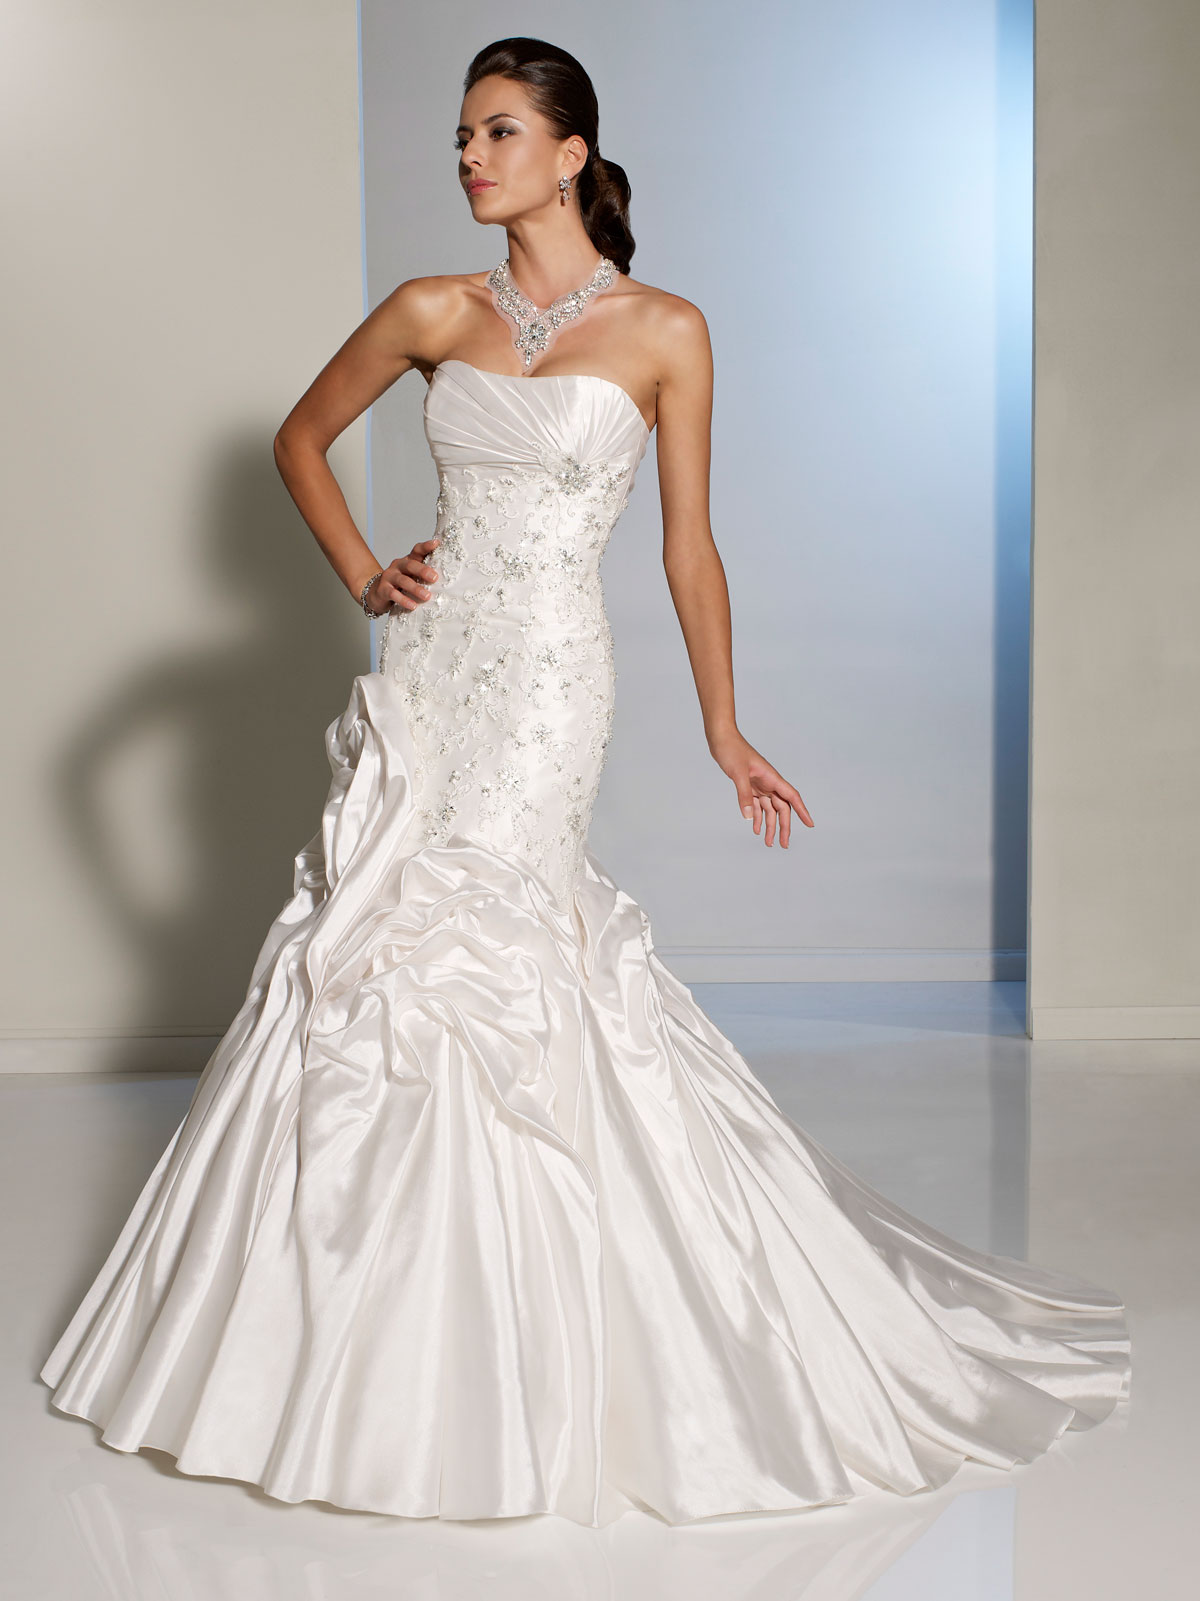 Sleek Strapless Mermaid Wedding Gown